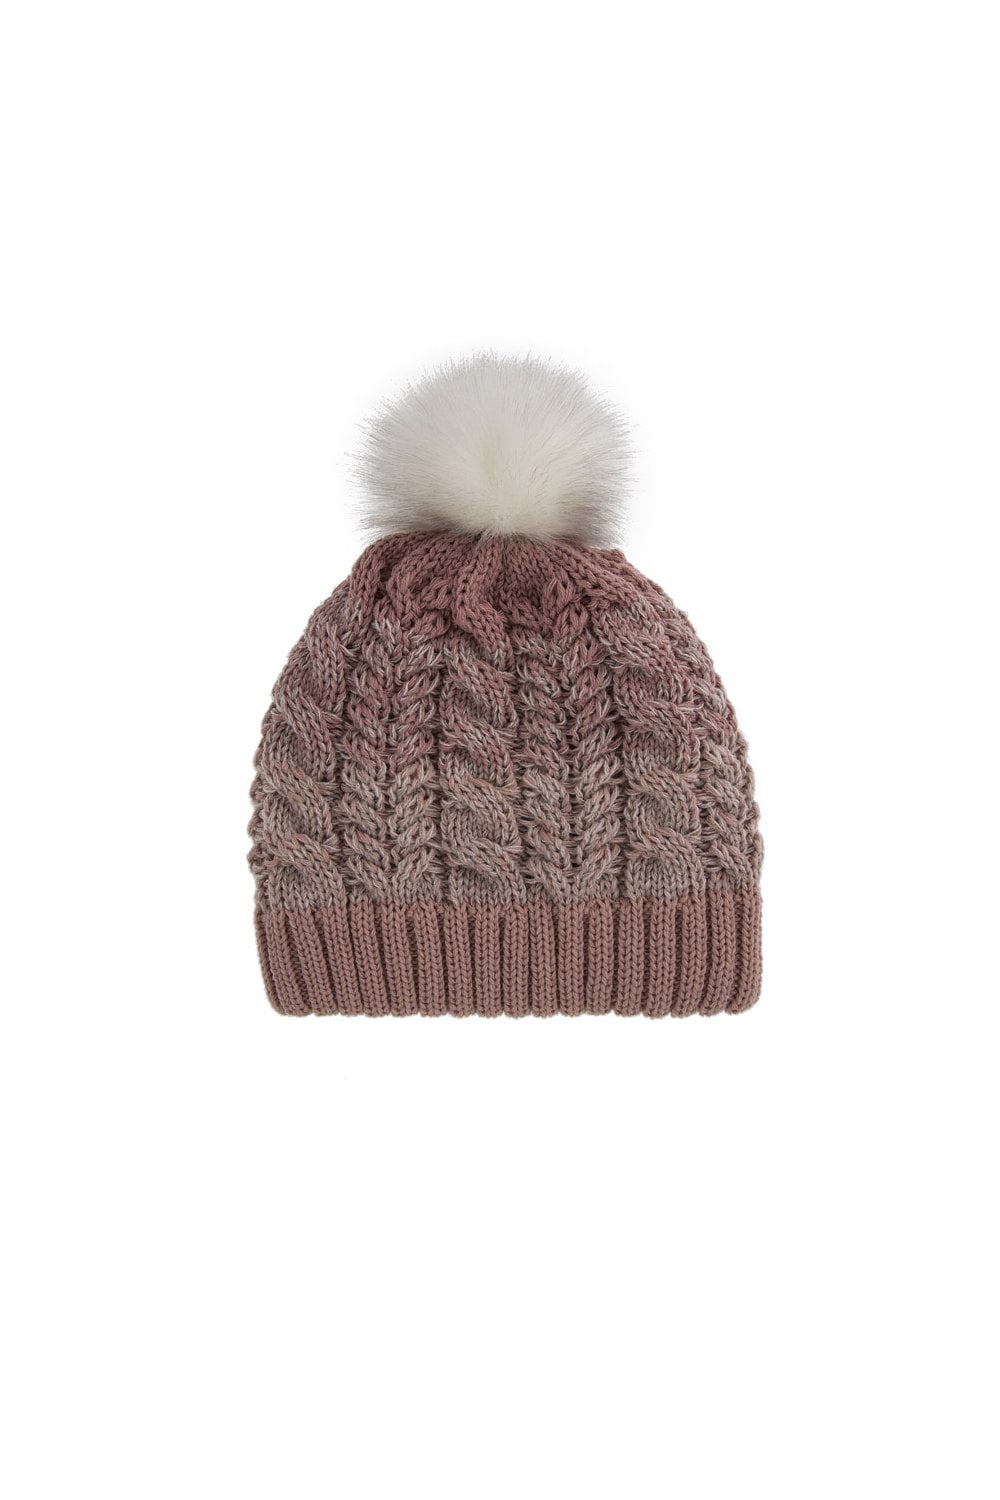 4612b3a4baa361 Dents Womens Ombre Cable Knit Hat with Pom Pom - Pink - Womenswear ...